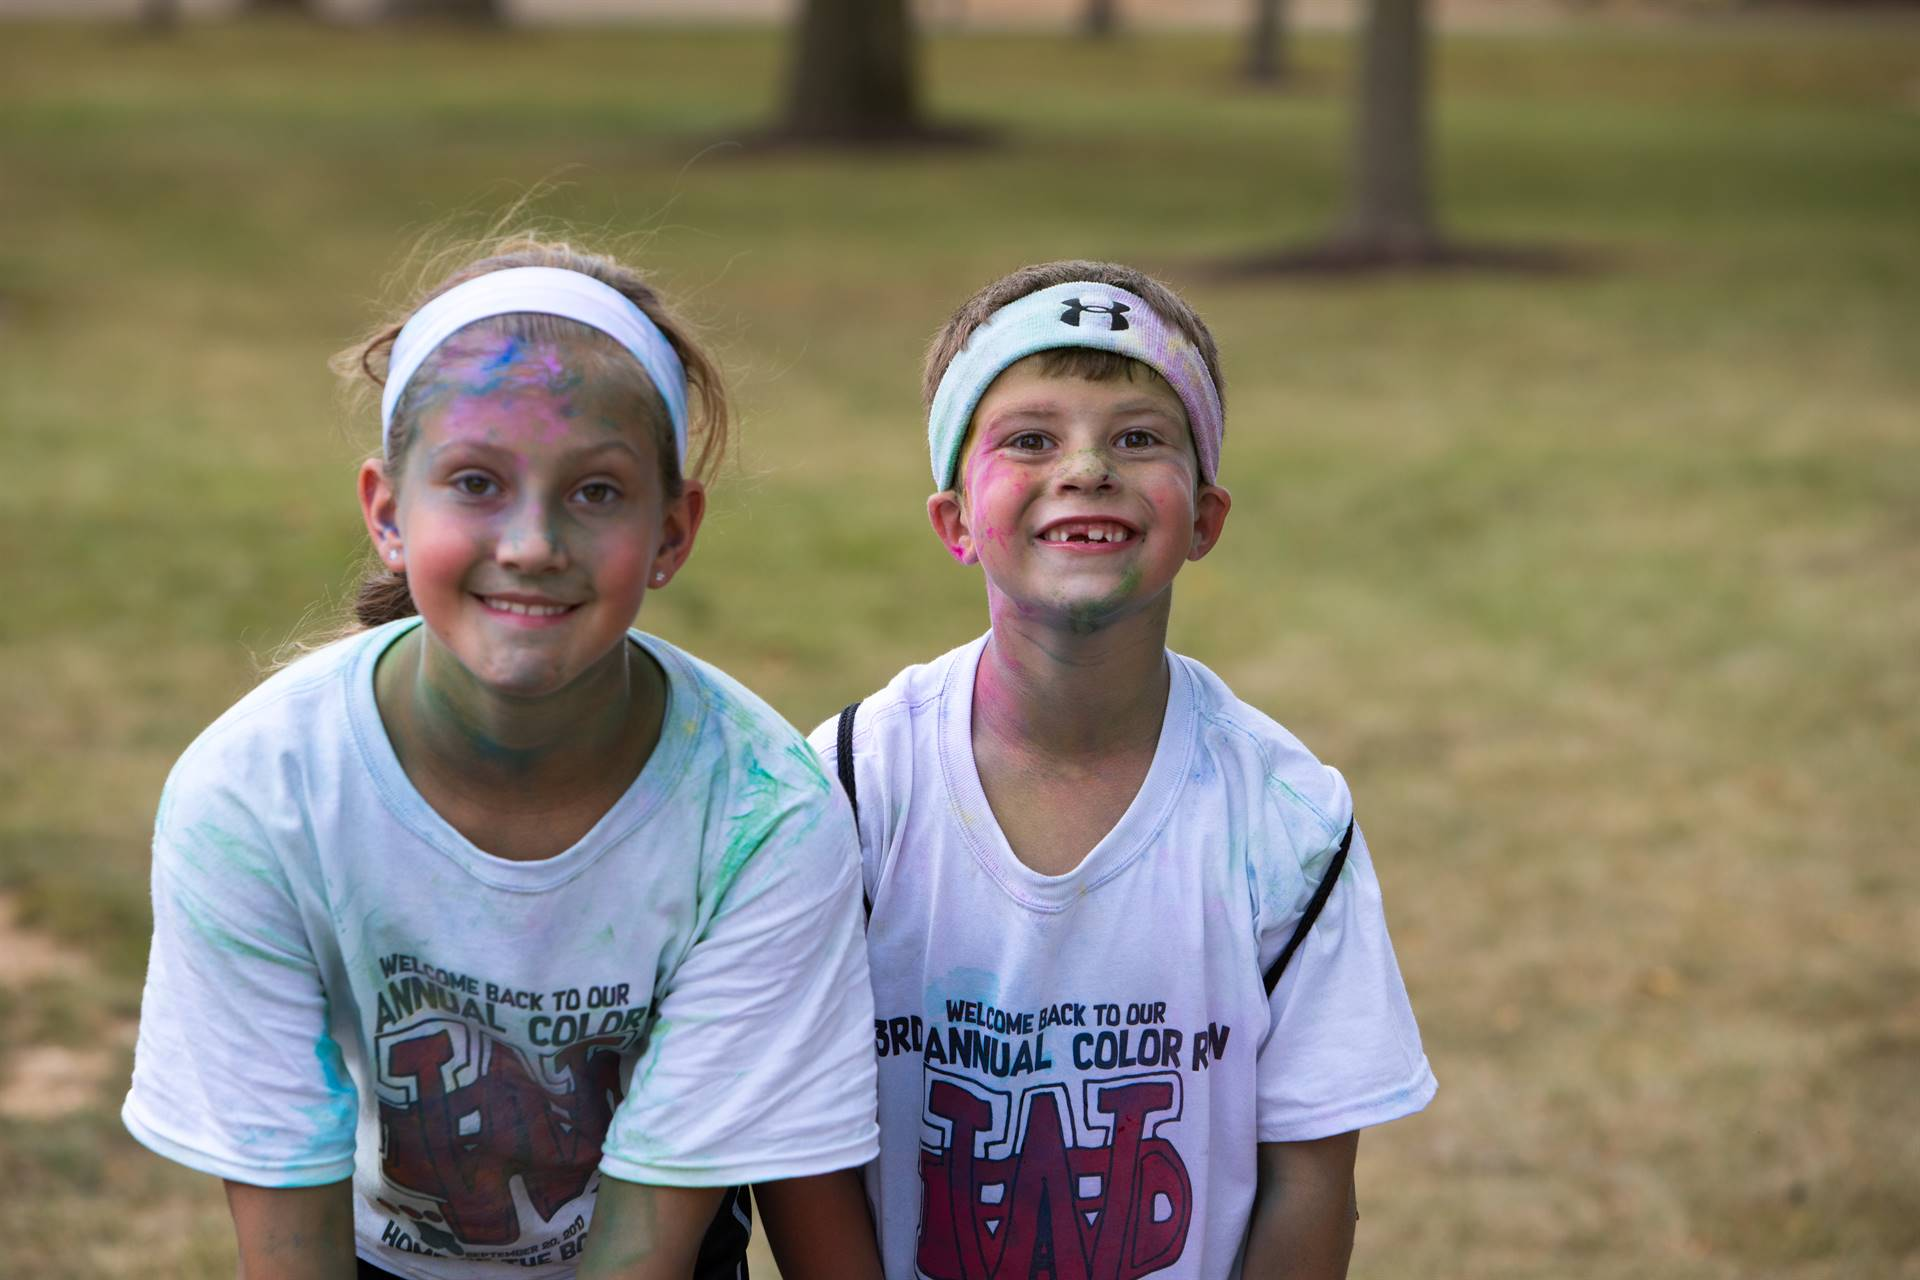 2 students after color run